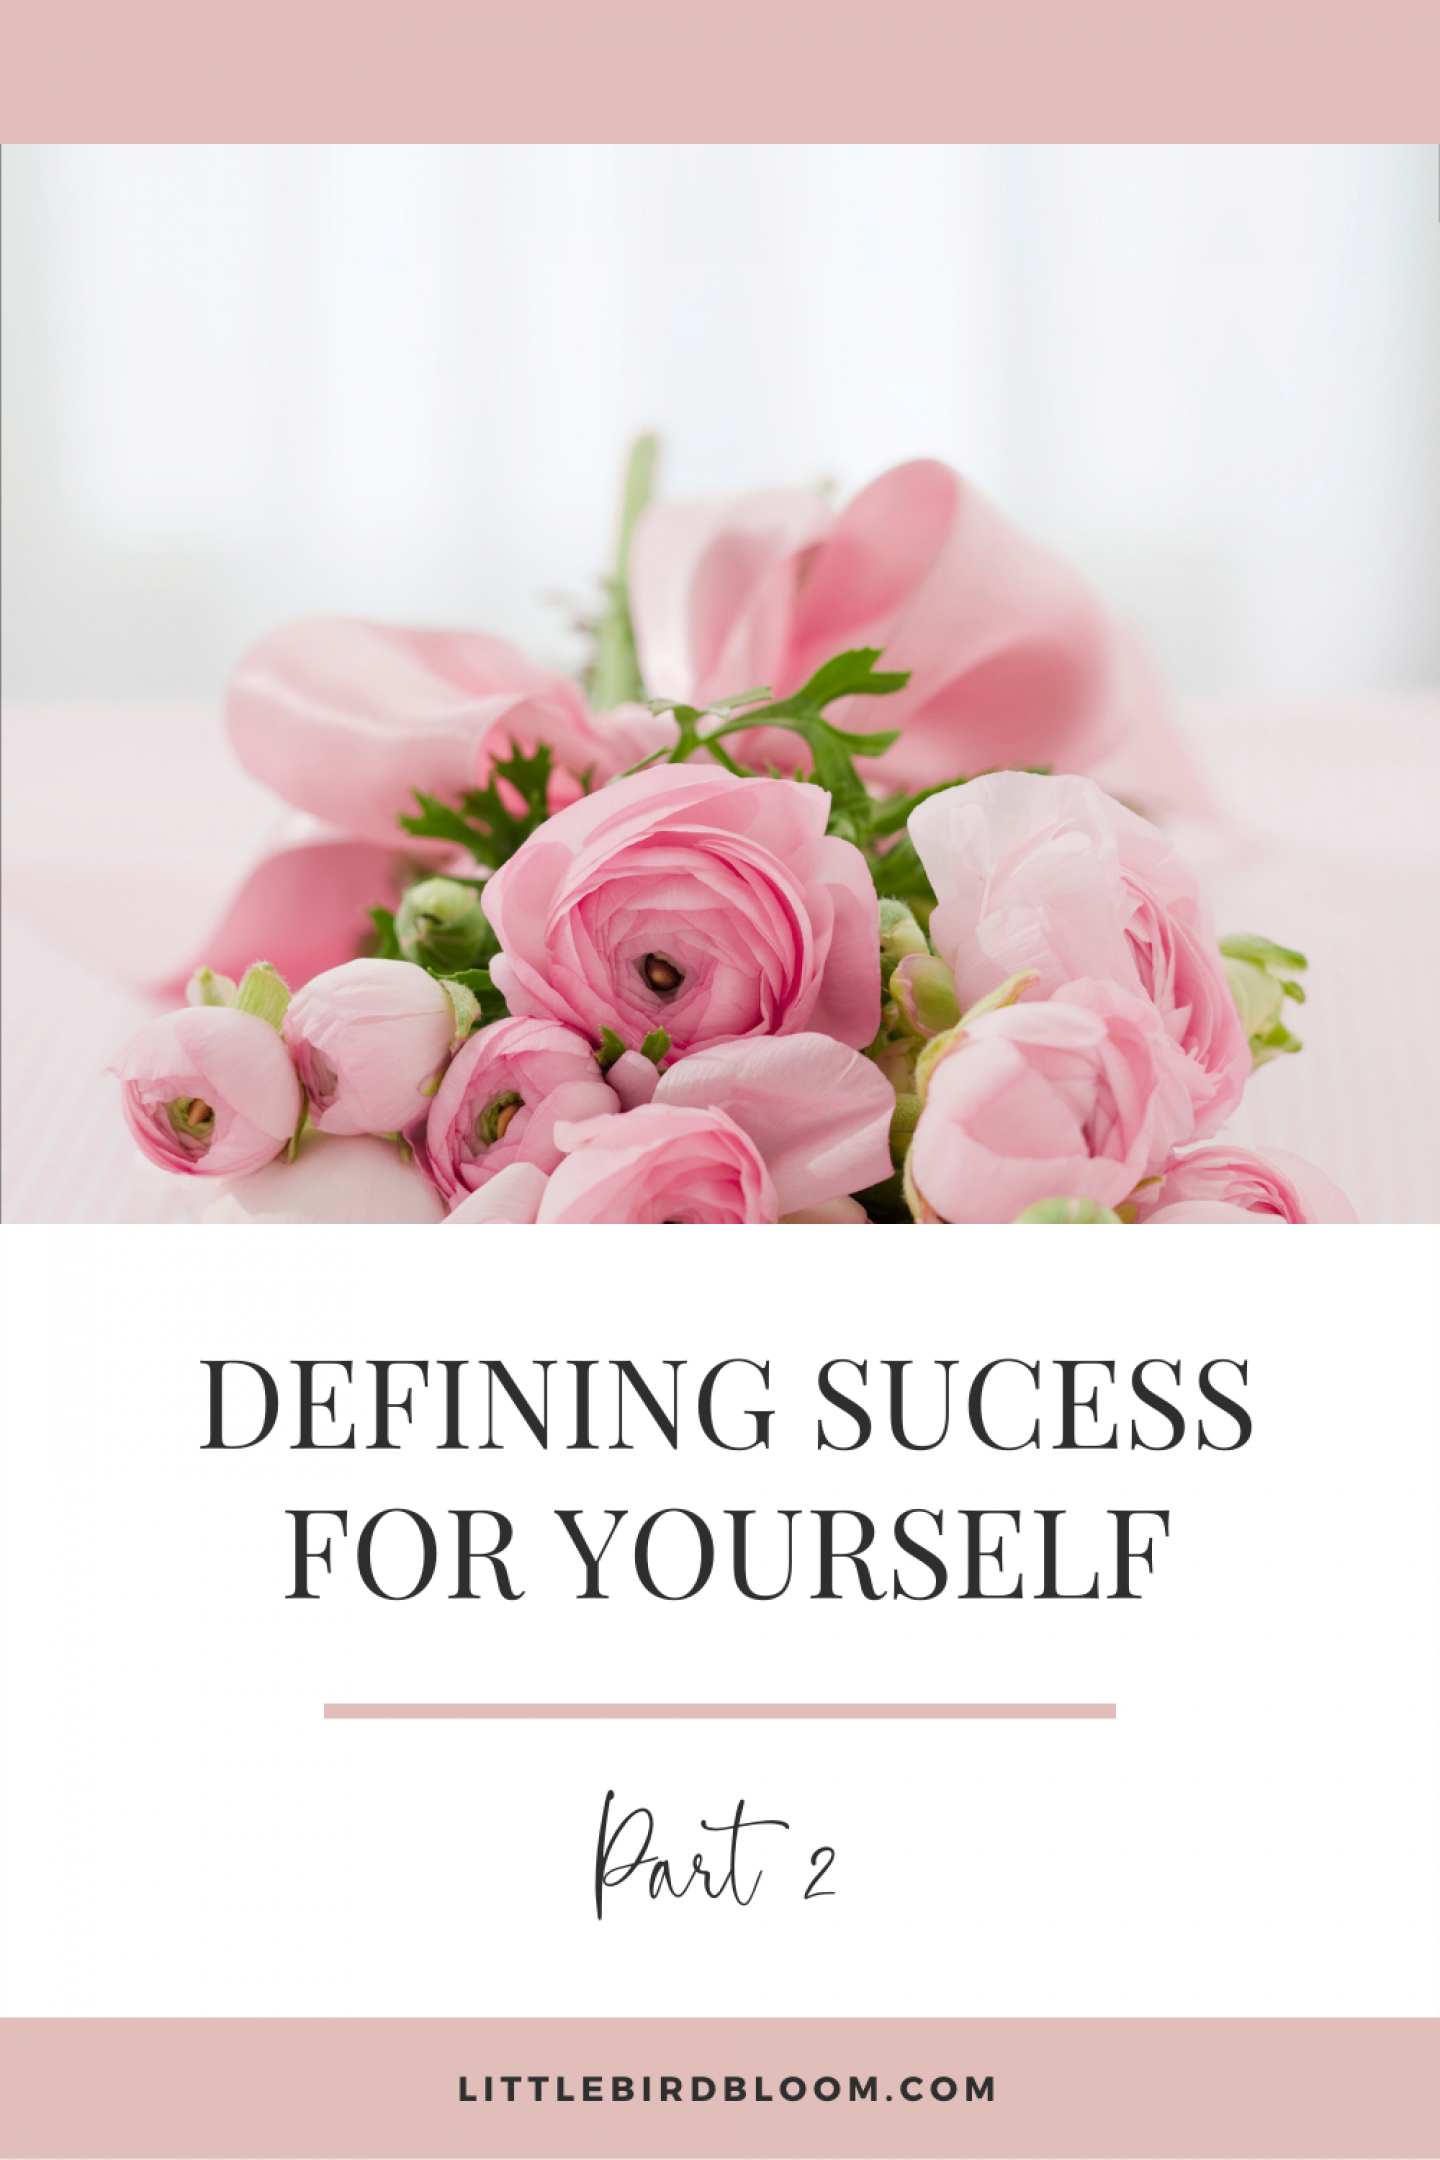 podcast for floral designers business and flowers (16)